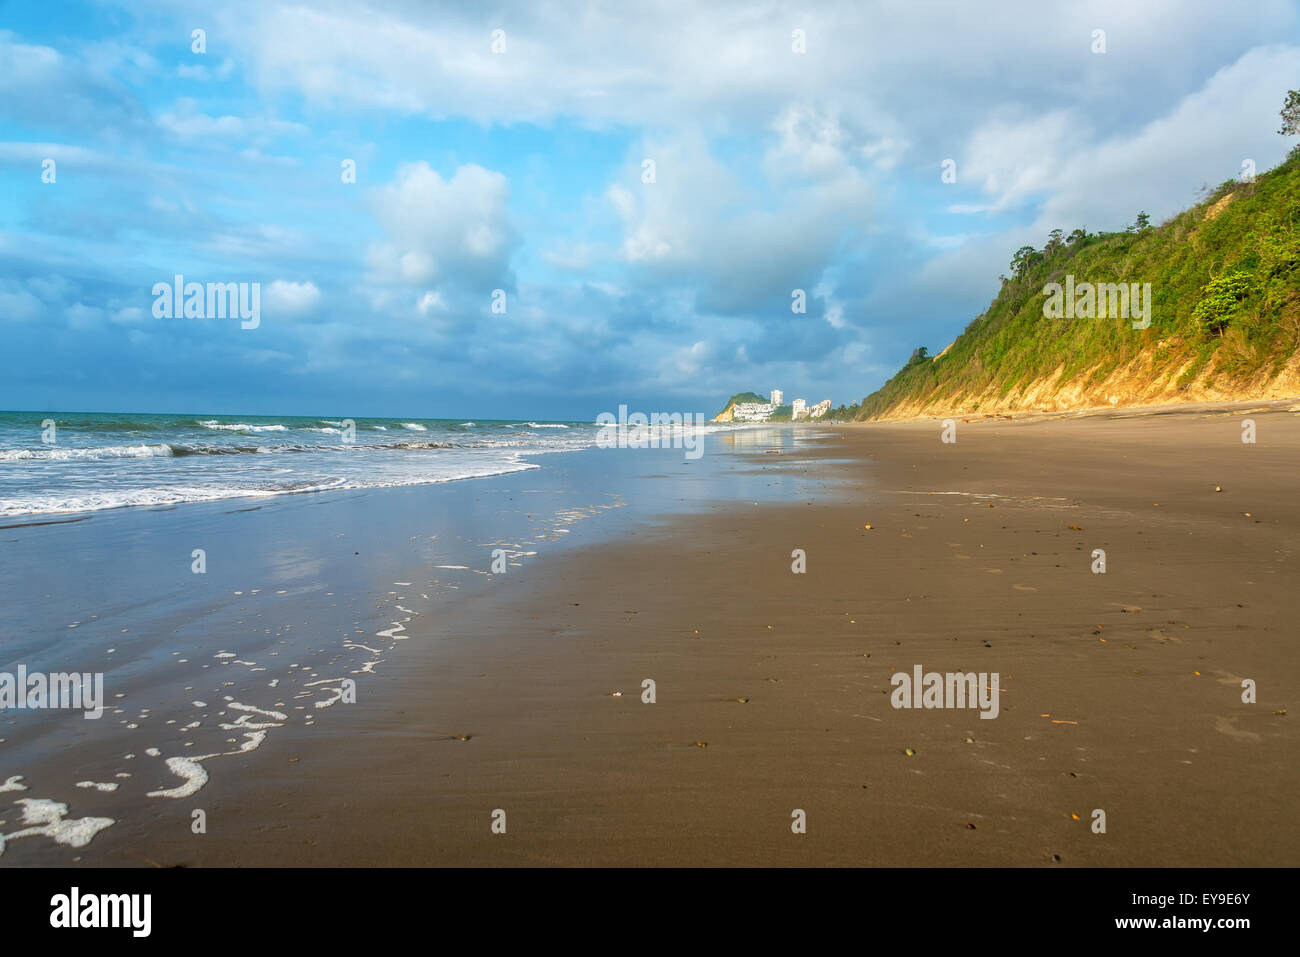 Long stretch of beach next to green hills in Same, Ecuador - Stock Image